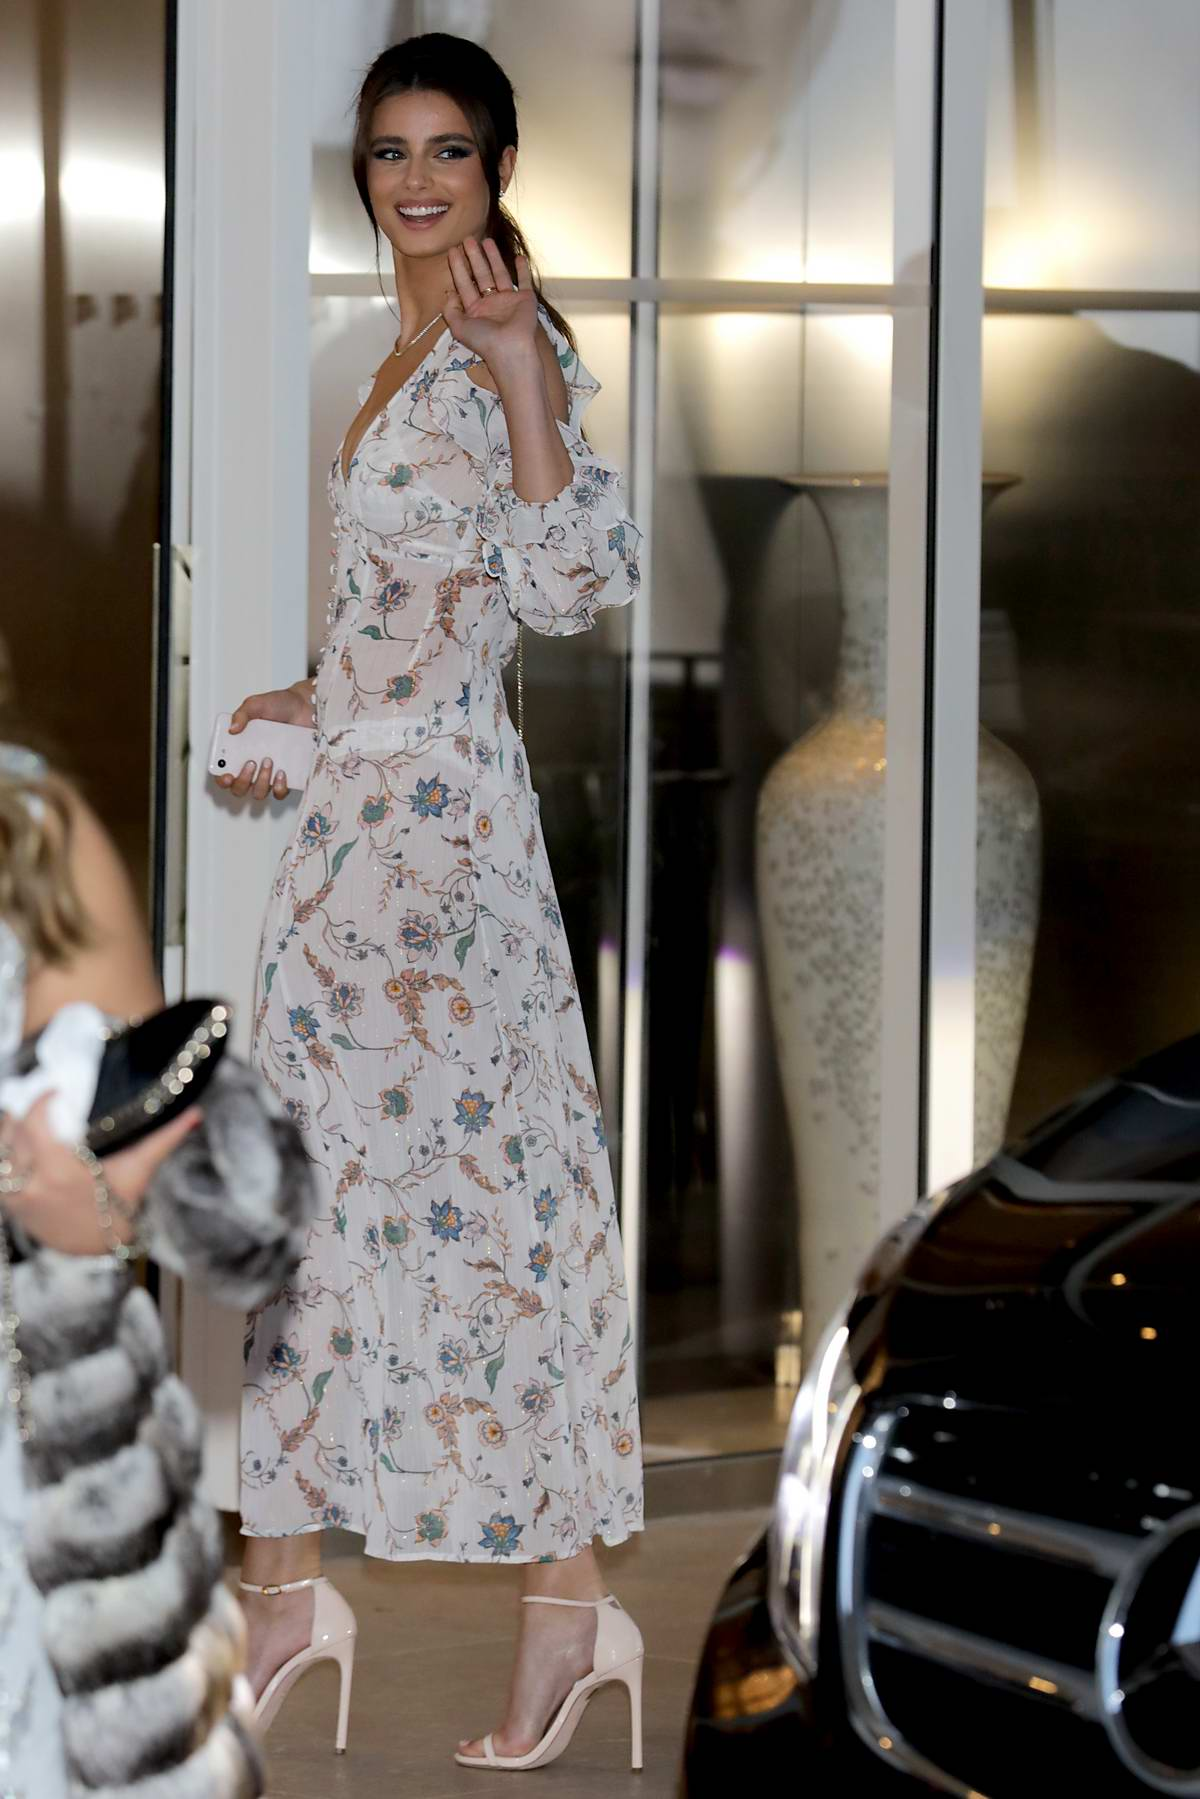 Taylor Hill looks stunning in a sheer floral dress as she leaves hotel Martinez during 72nd Cannes Film Festival in Cannes, France